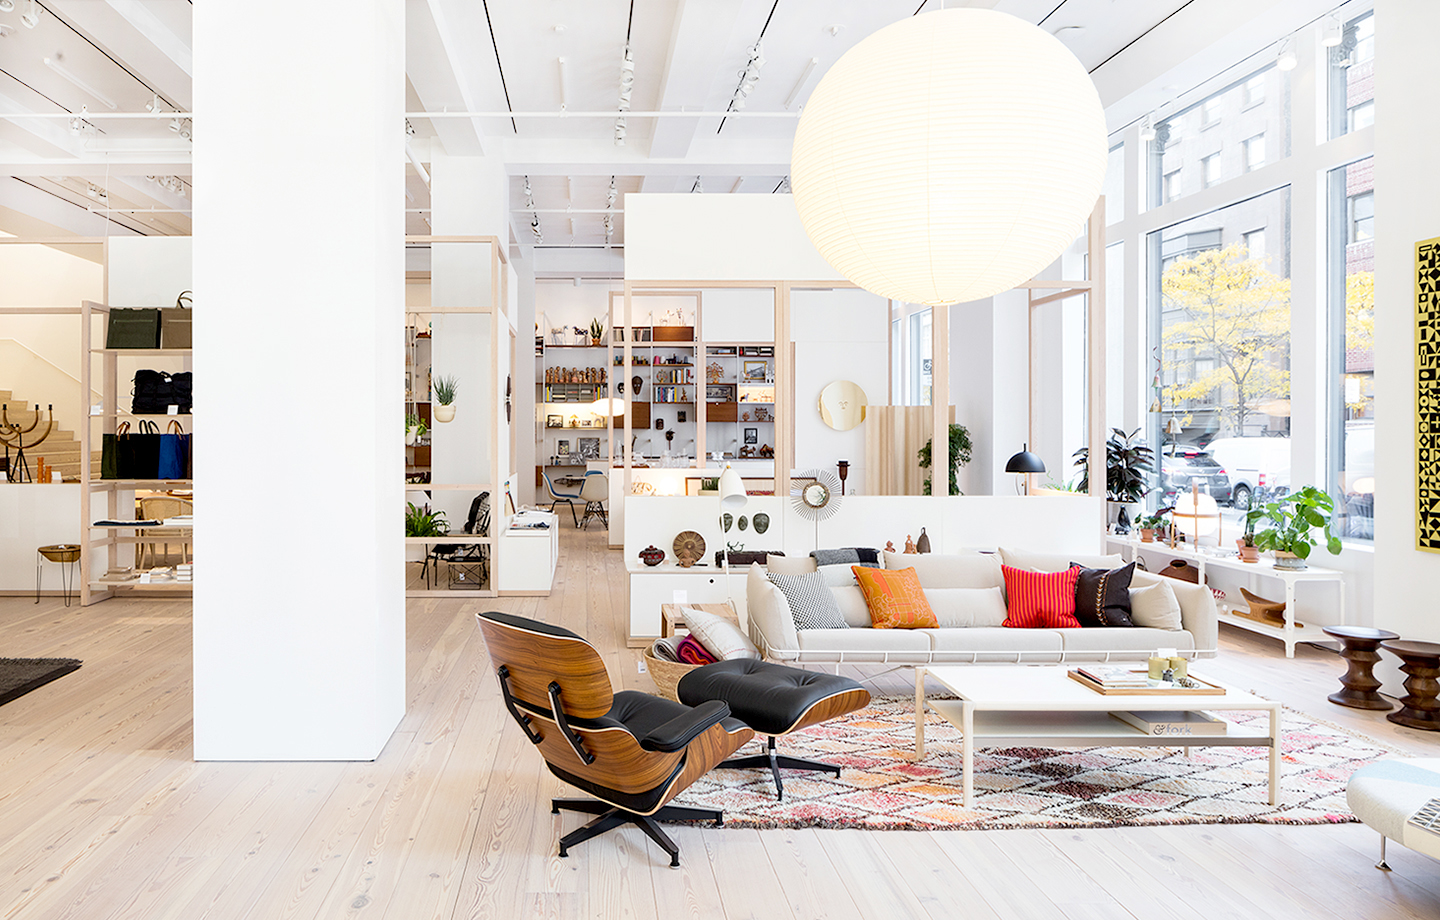 The best furniture stores in the U.S.